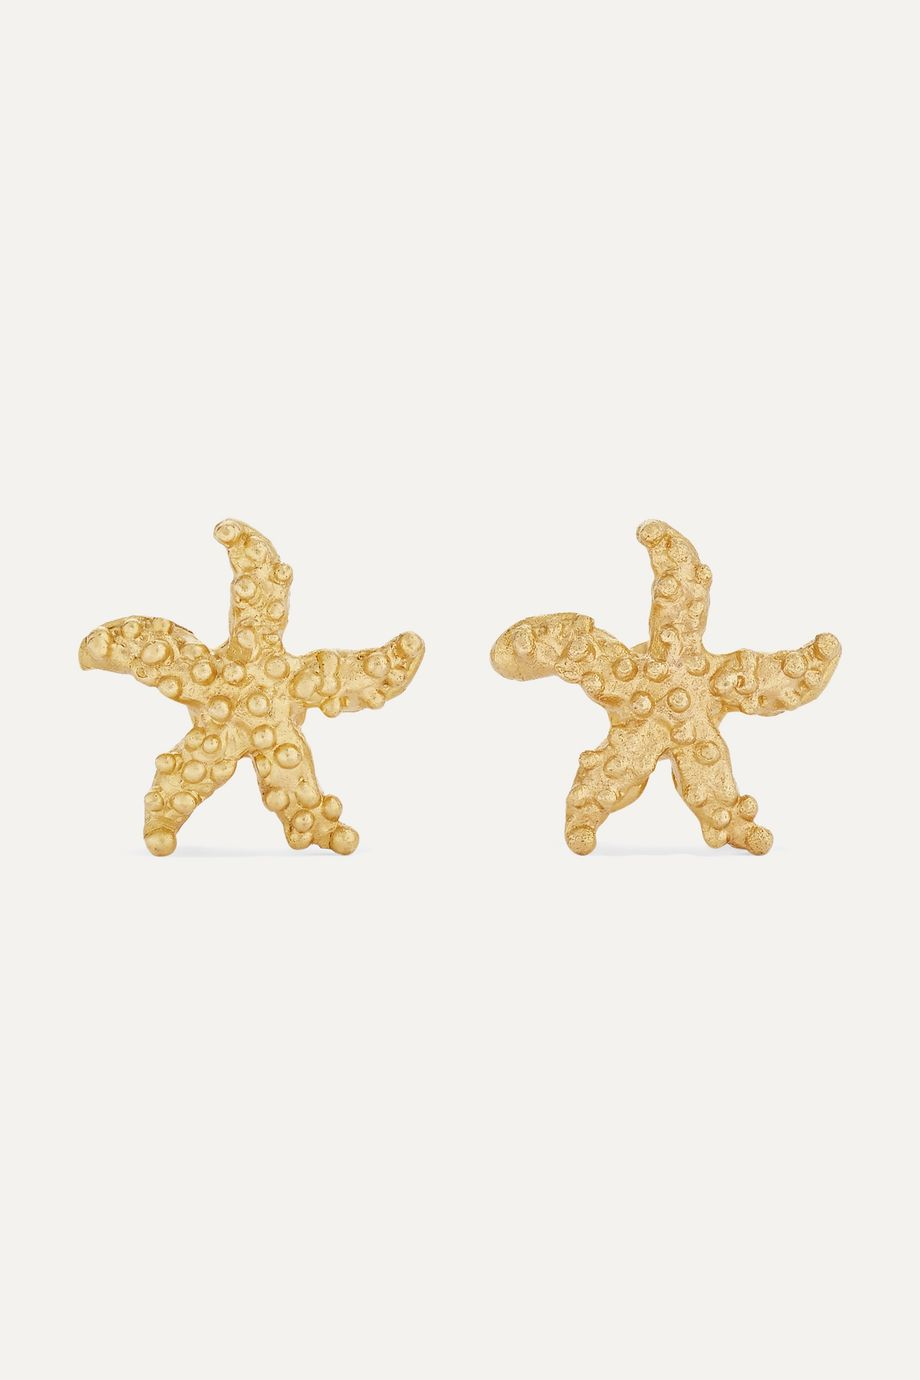 Pippa Small + NET SUSTAIN Starfish 18-karat gold earrings